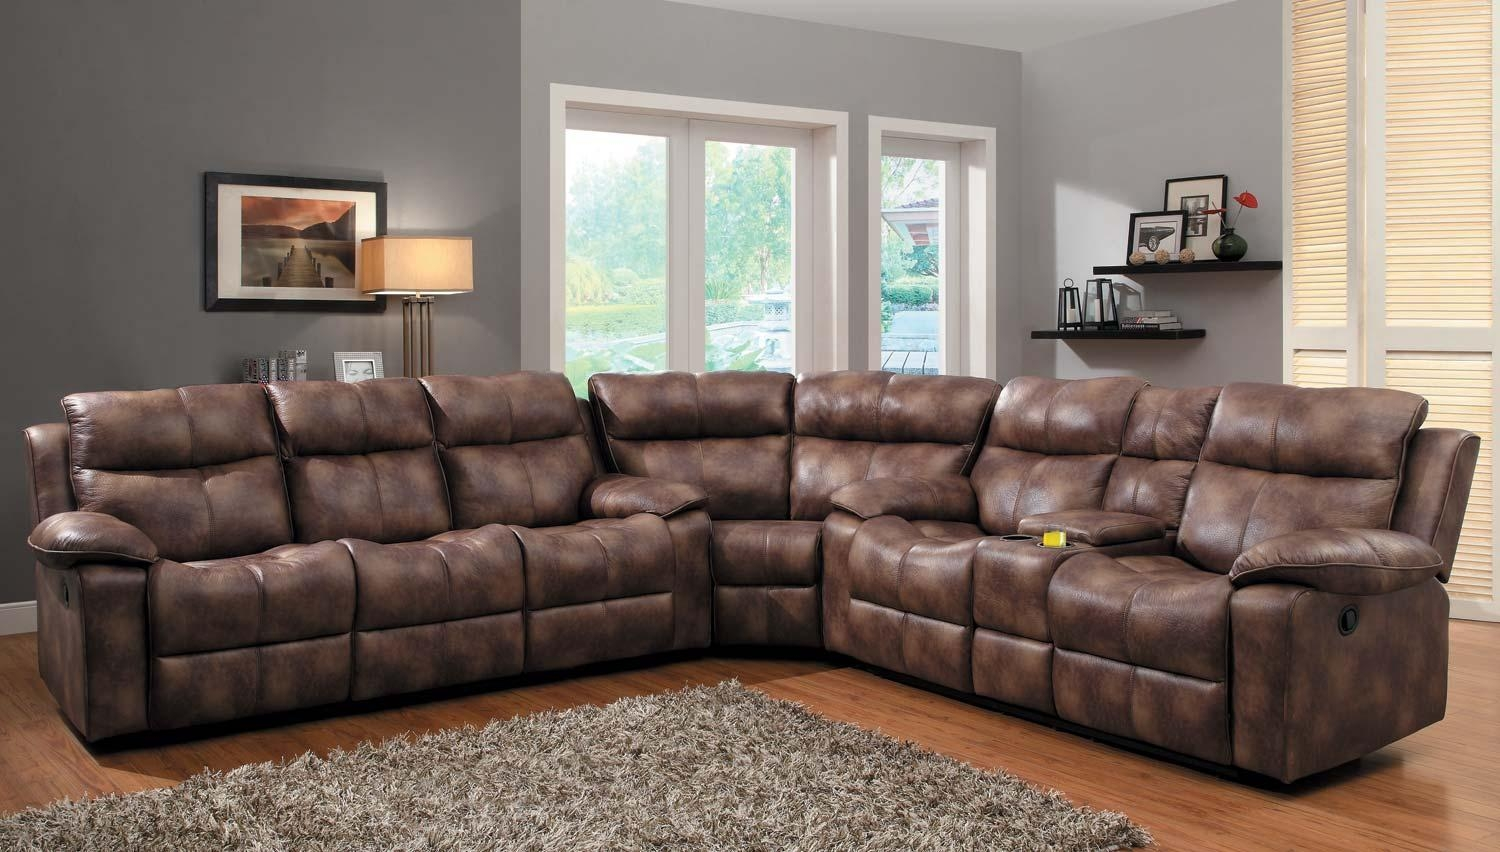 Furniture: Modular Sectional Costco | Costco Sectional Sofa Intended For Cream Sectional Leather Sofas (View 14 of 22)